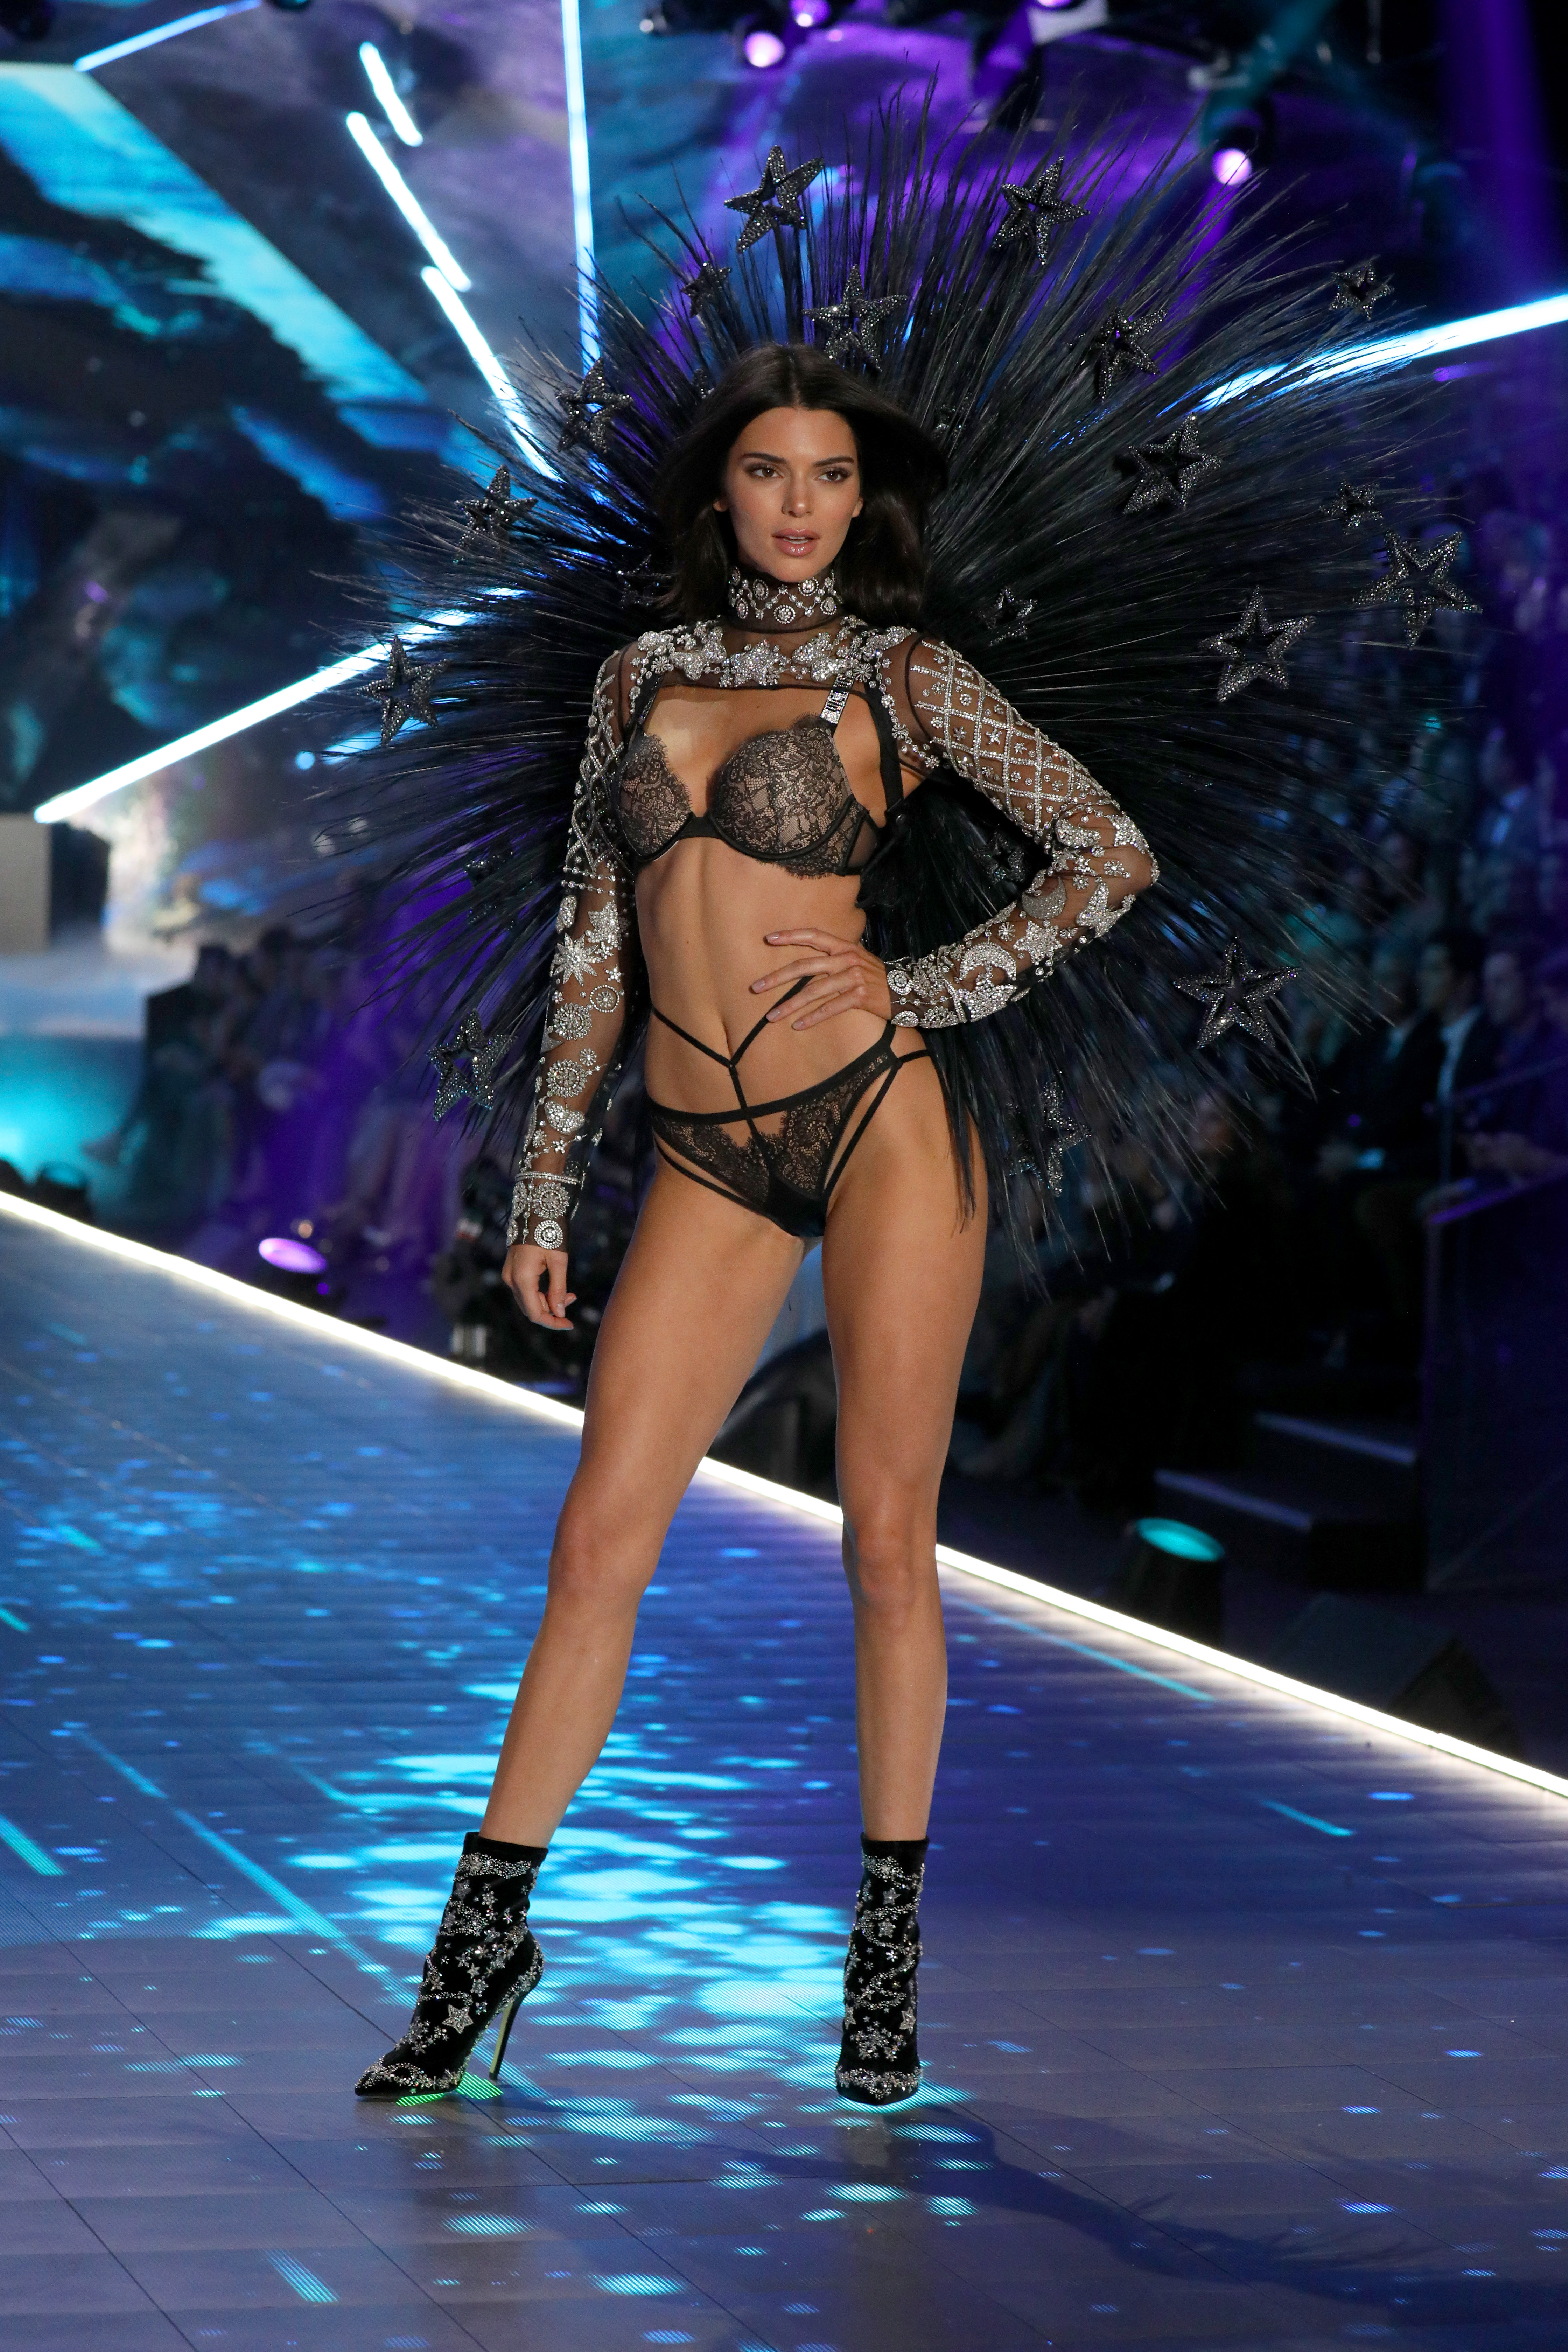 Victoria S Secret Fashion Show 2018 10 Angels You Need To Watch Out